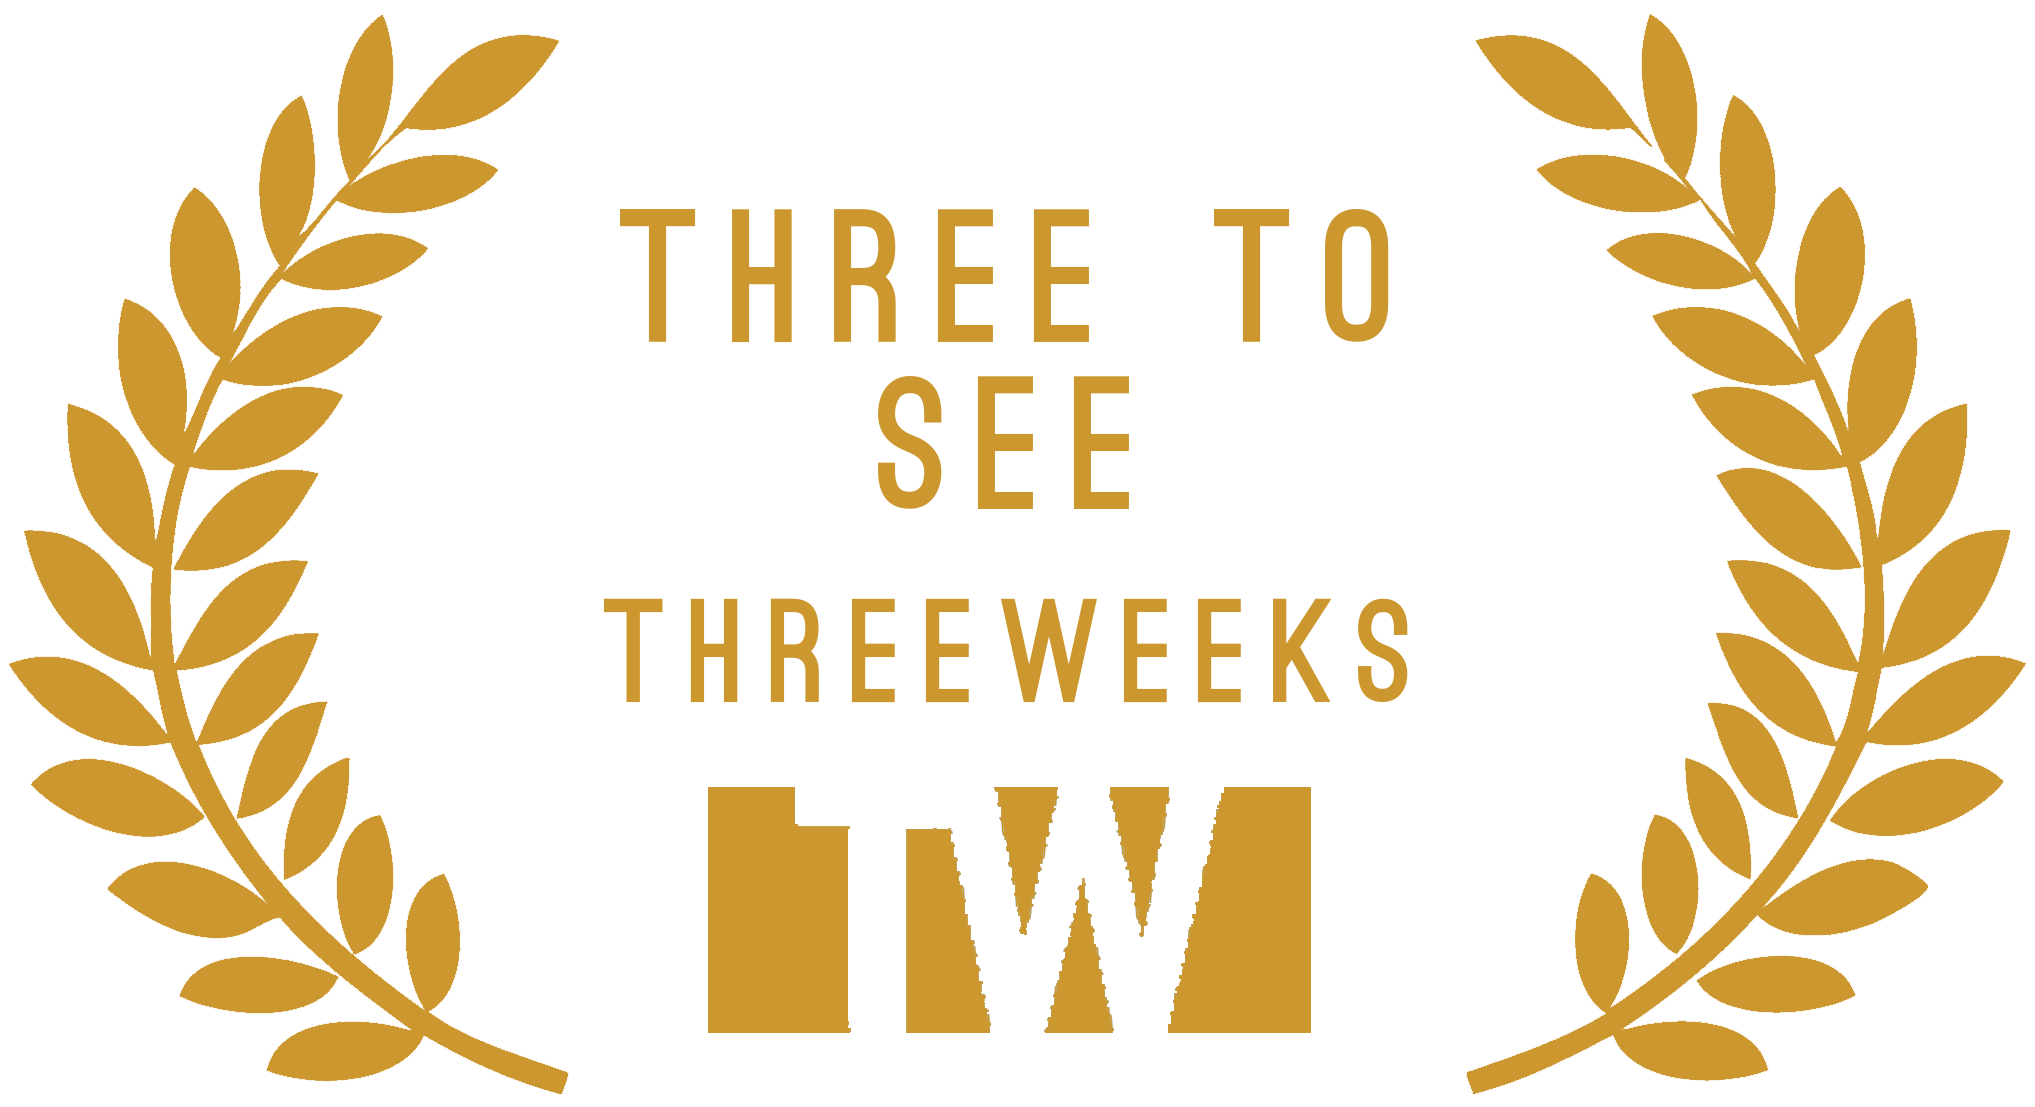 Three to see threeweeks award for edfringe and edinburgh fringe magic show by Aaron Calvert